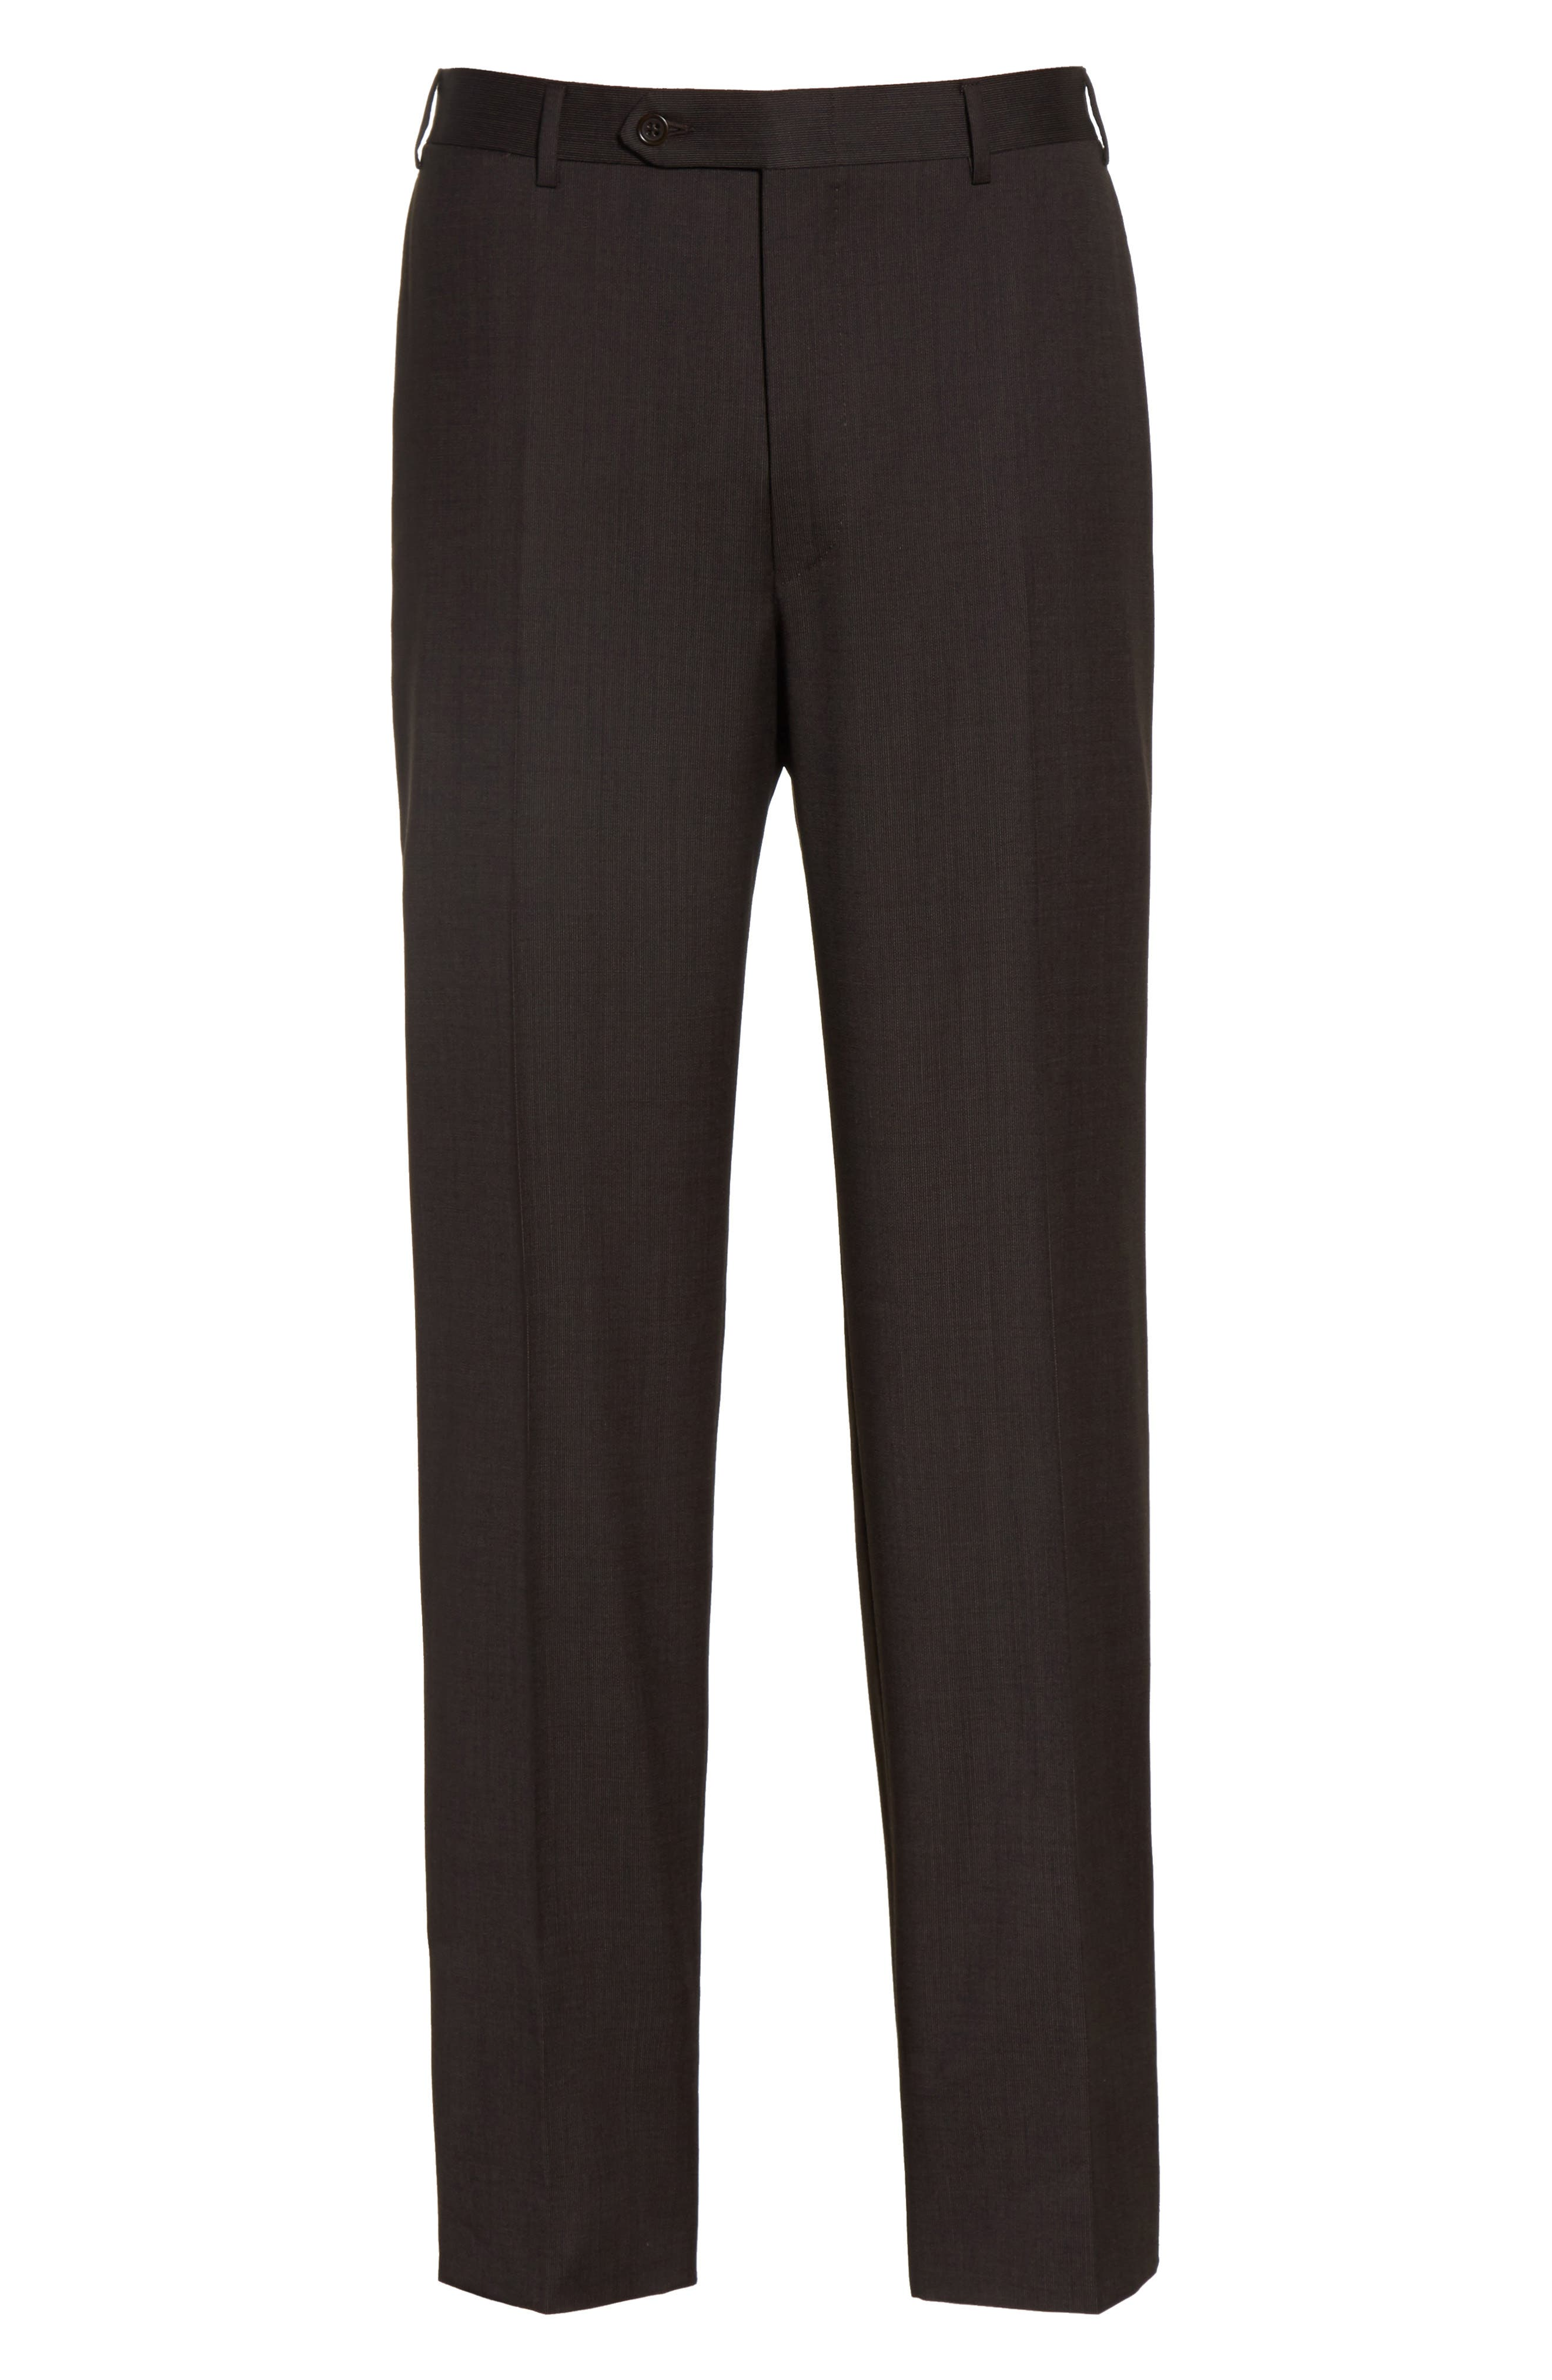 Flat Front Stripe Wool Trousers,                             Alternate thumbnail 6, color,                             Brown